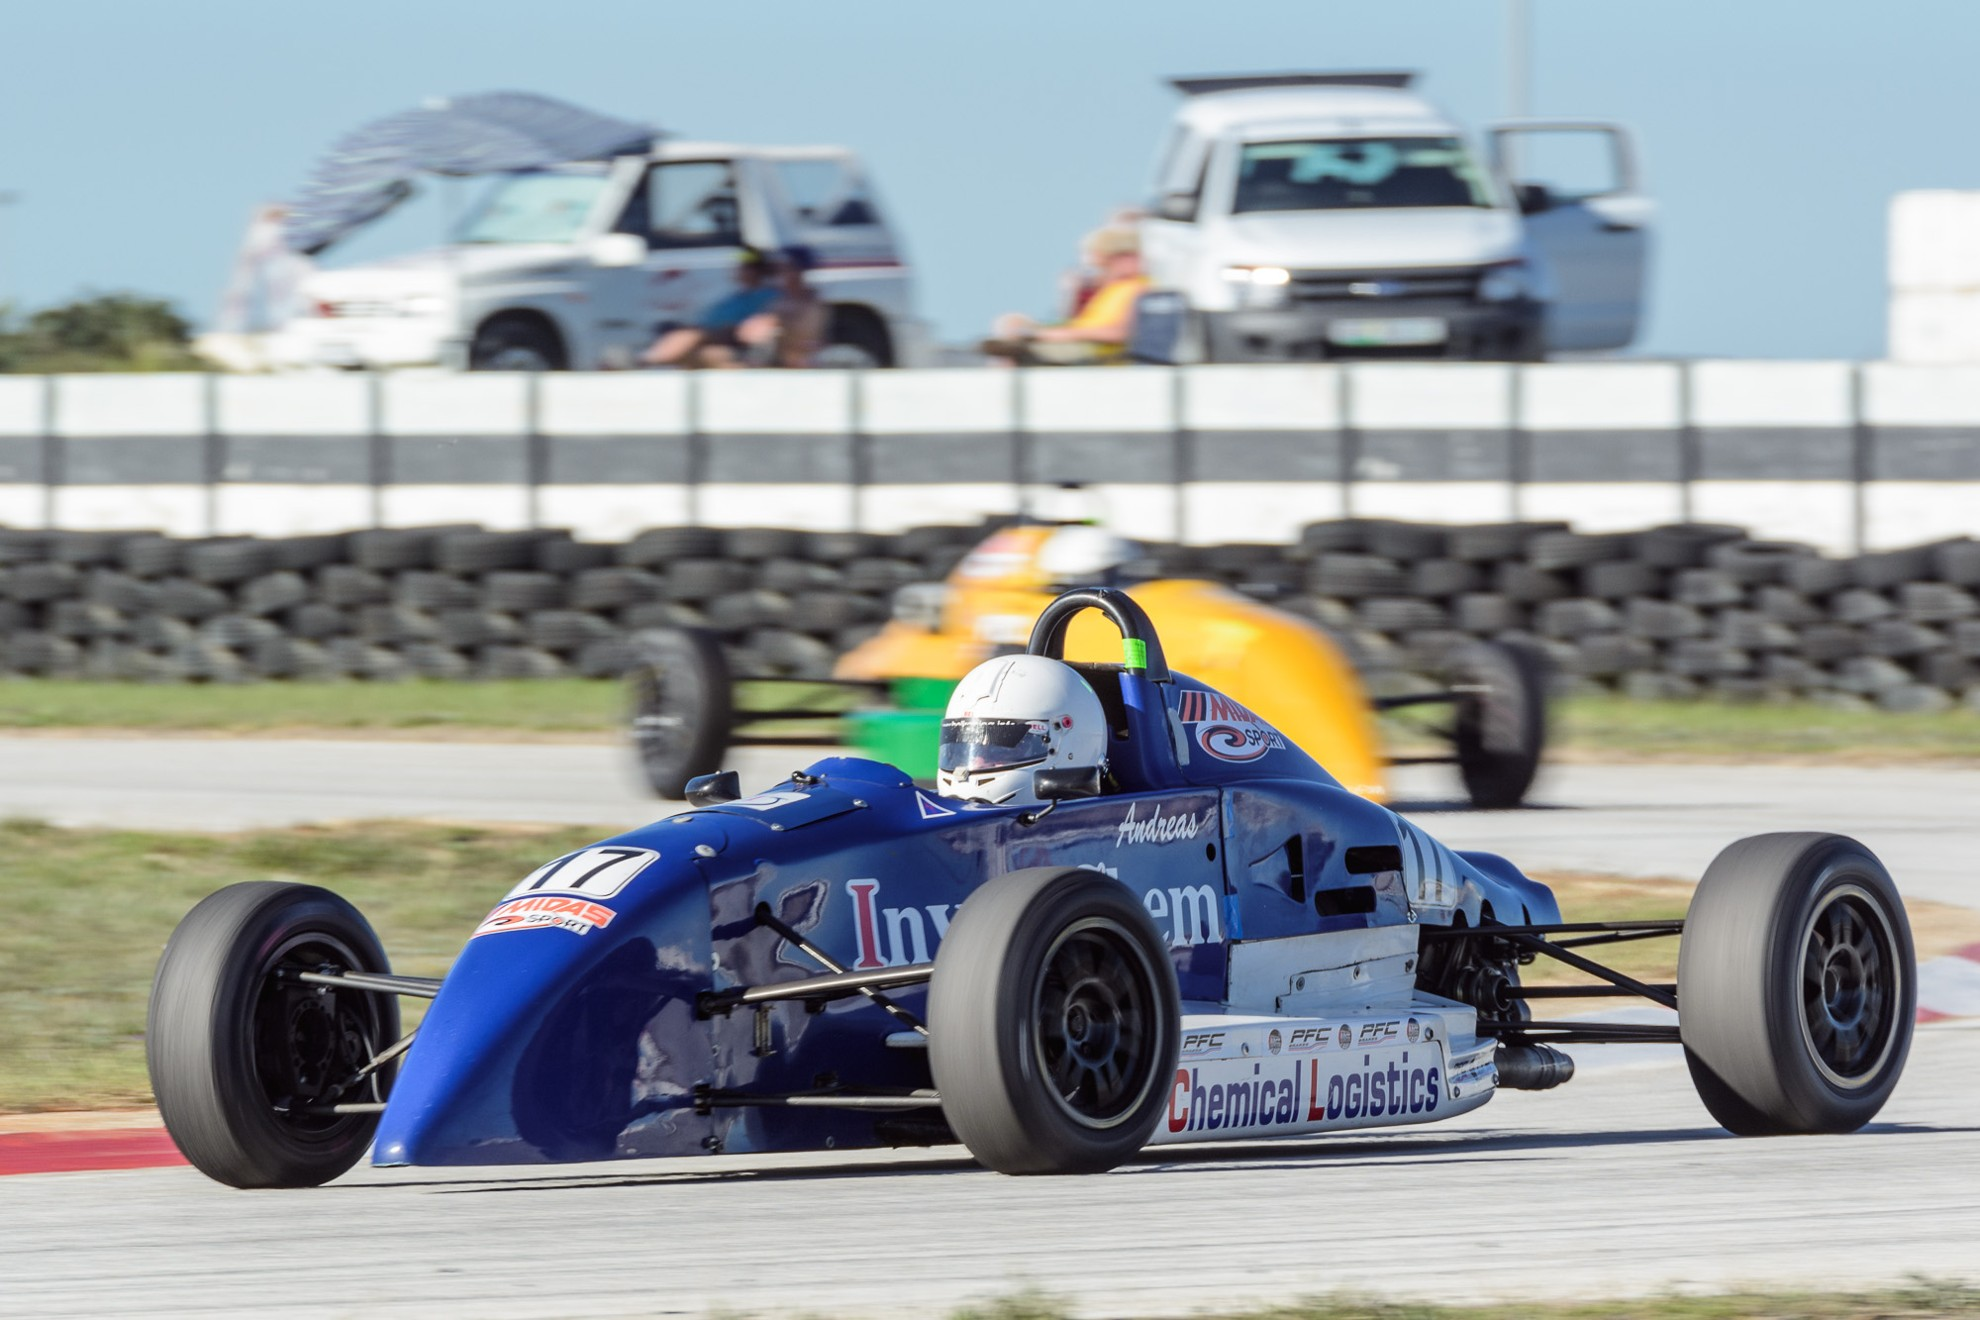 Single_Seater_Racing_South_Africa